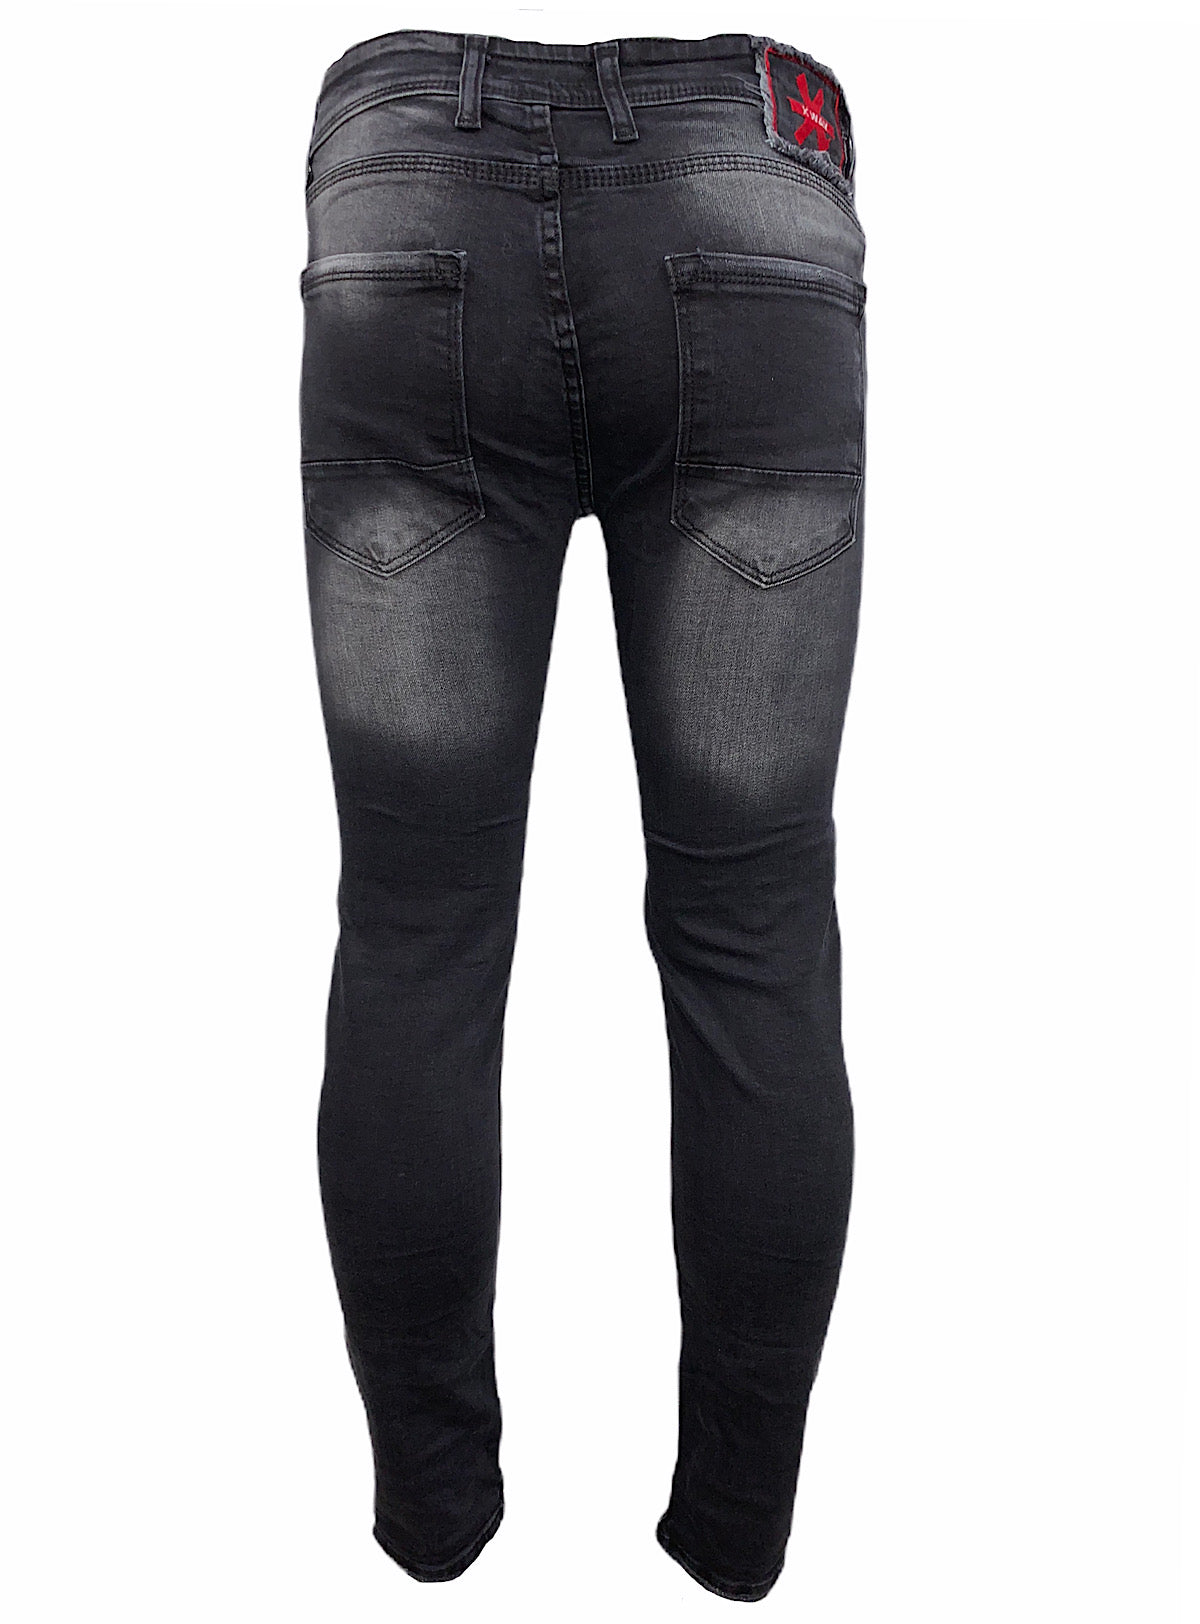 X-Way Jeans - Only Battle - Black Wash - 6041